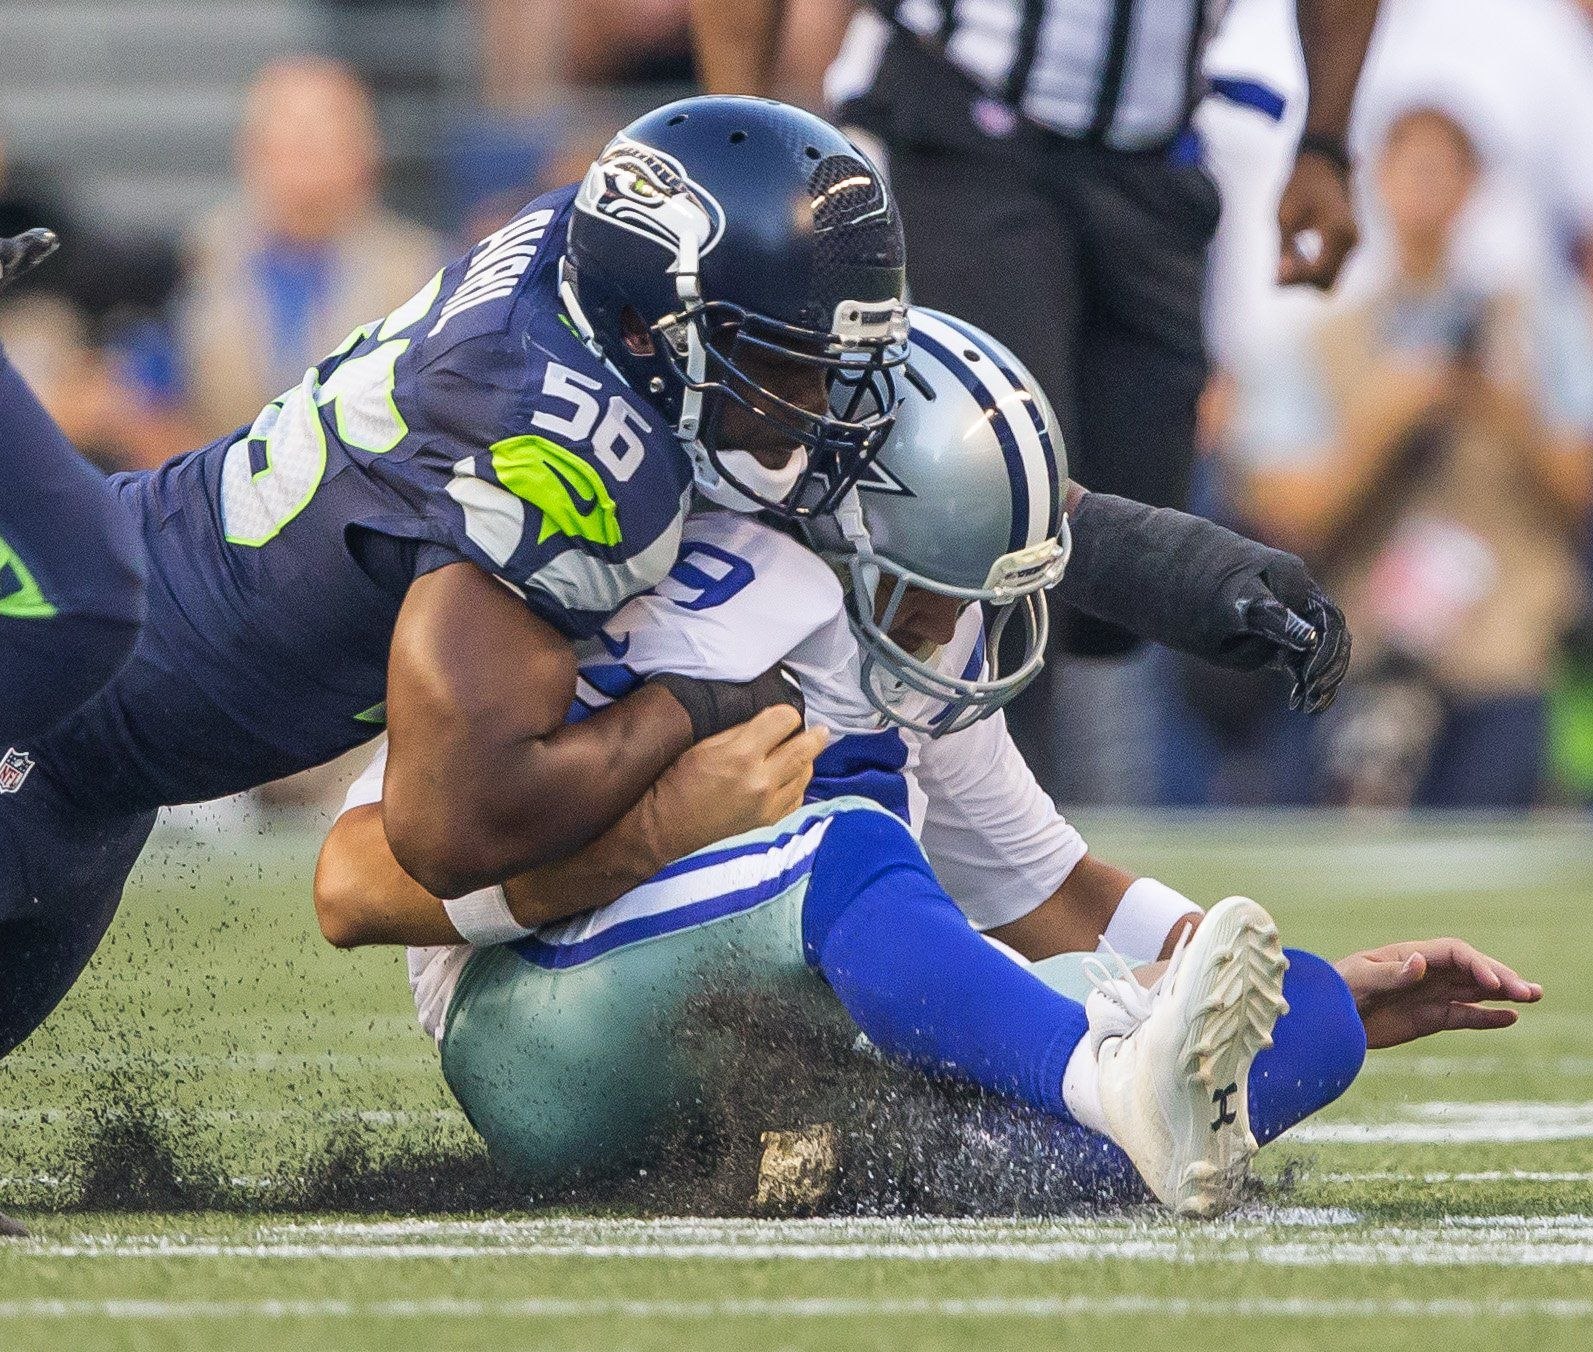 Cliff Avril knocks Dallas quarterback Tony Romo out of the game with this sack on the third play of the game Thursday.  The Dallas Cowboys played the Seattle Seahawks in preseason football Thursday, August 25, 2016 at CenturyLink Field in Seattle. Romo sustained a broken bone in his back when he was hit from behind by Seattle's Cliff Avrill and slid awkwardly on the third play of a preseason game. (Dean Rutz/The Seattle Times)